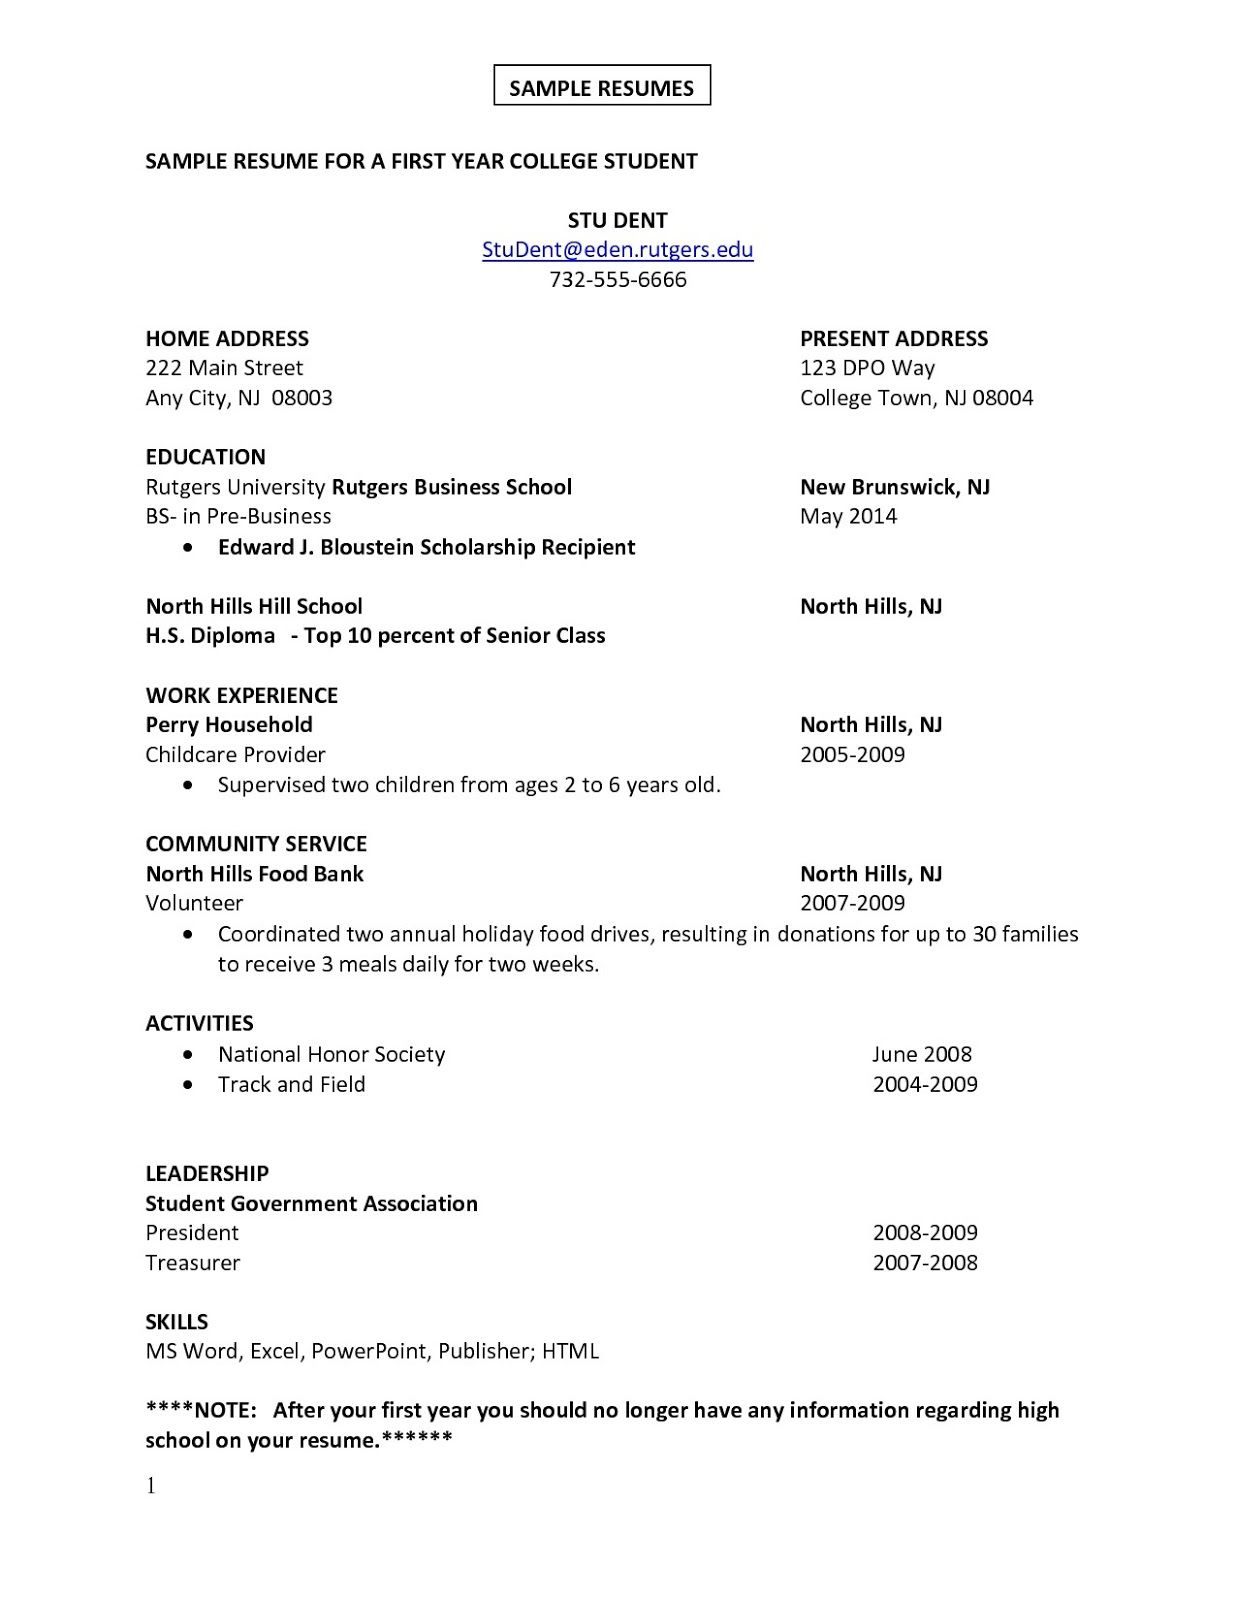 resume for first job template - zrom.tk